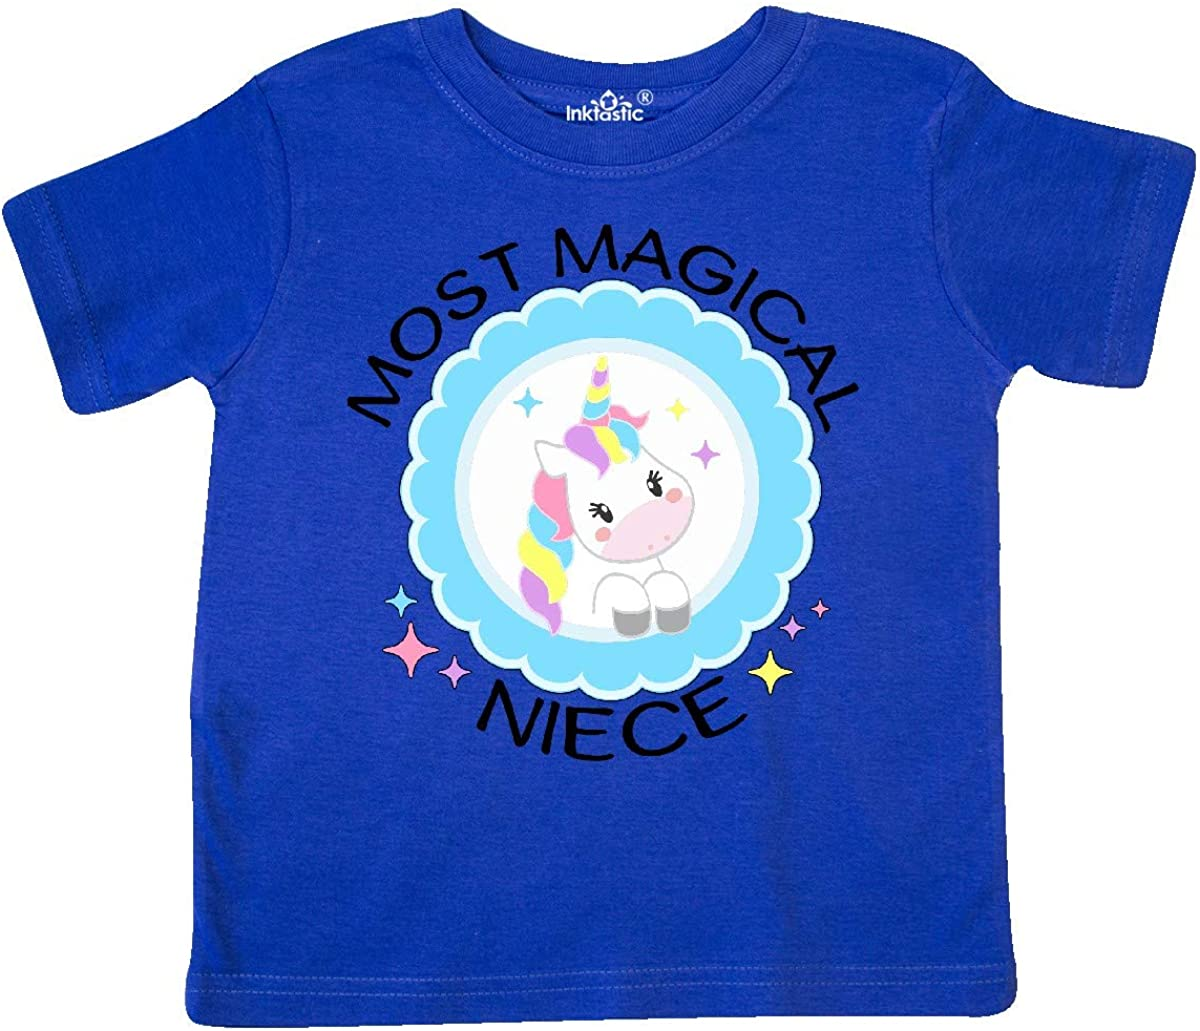 Cute Unicorn Badge Toddler T-Shirt inktastic Most Magical Niece